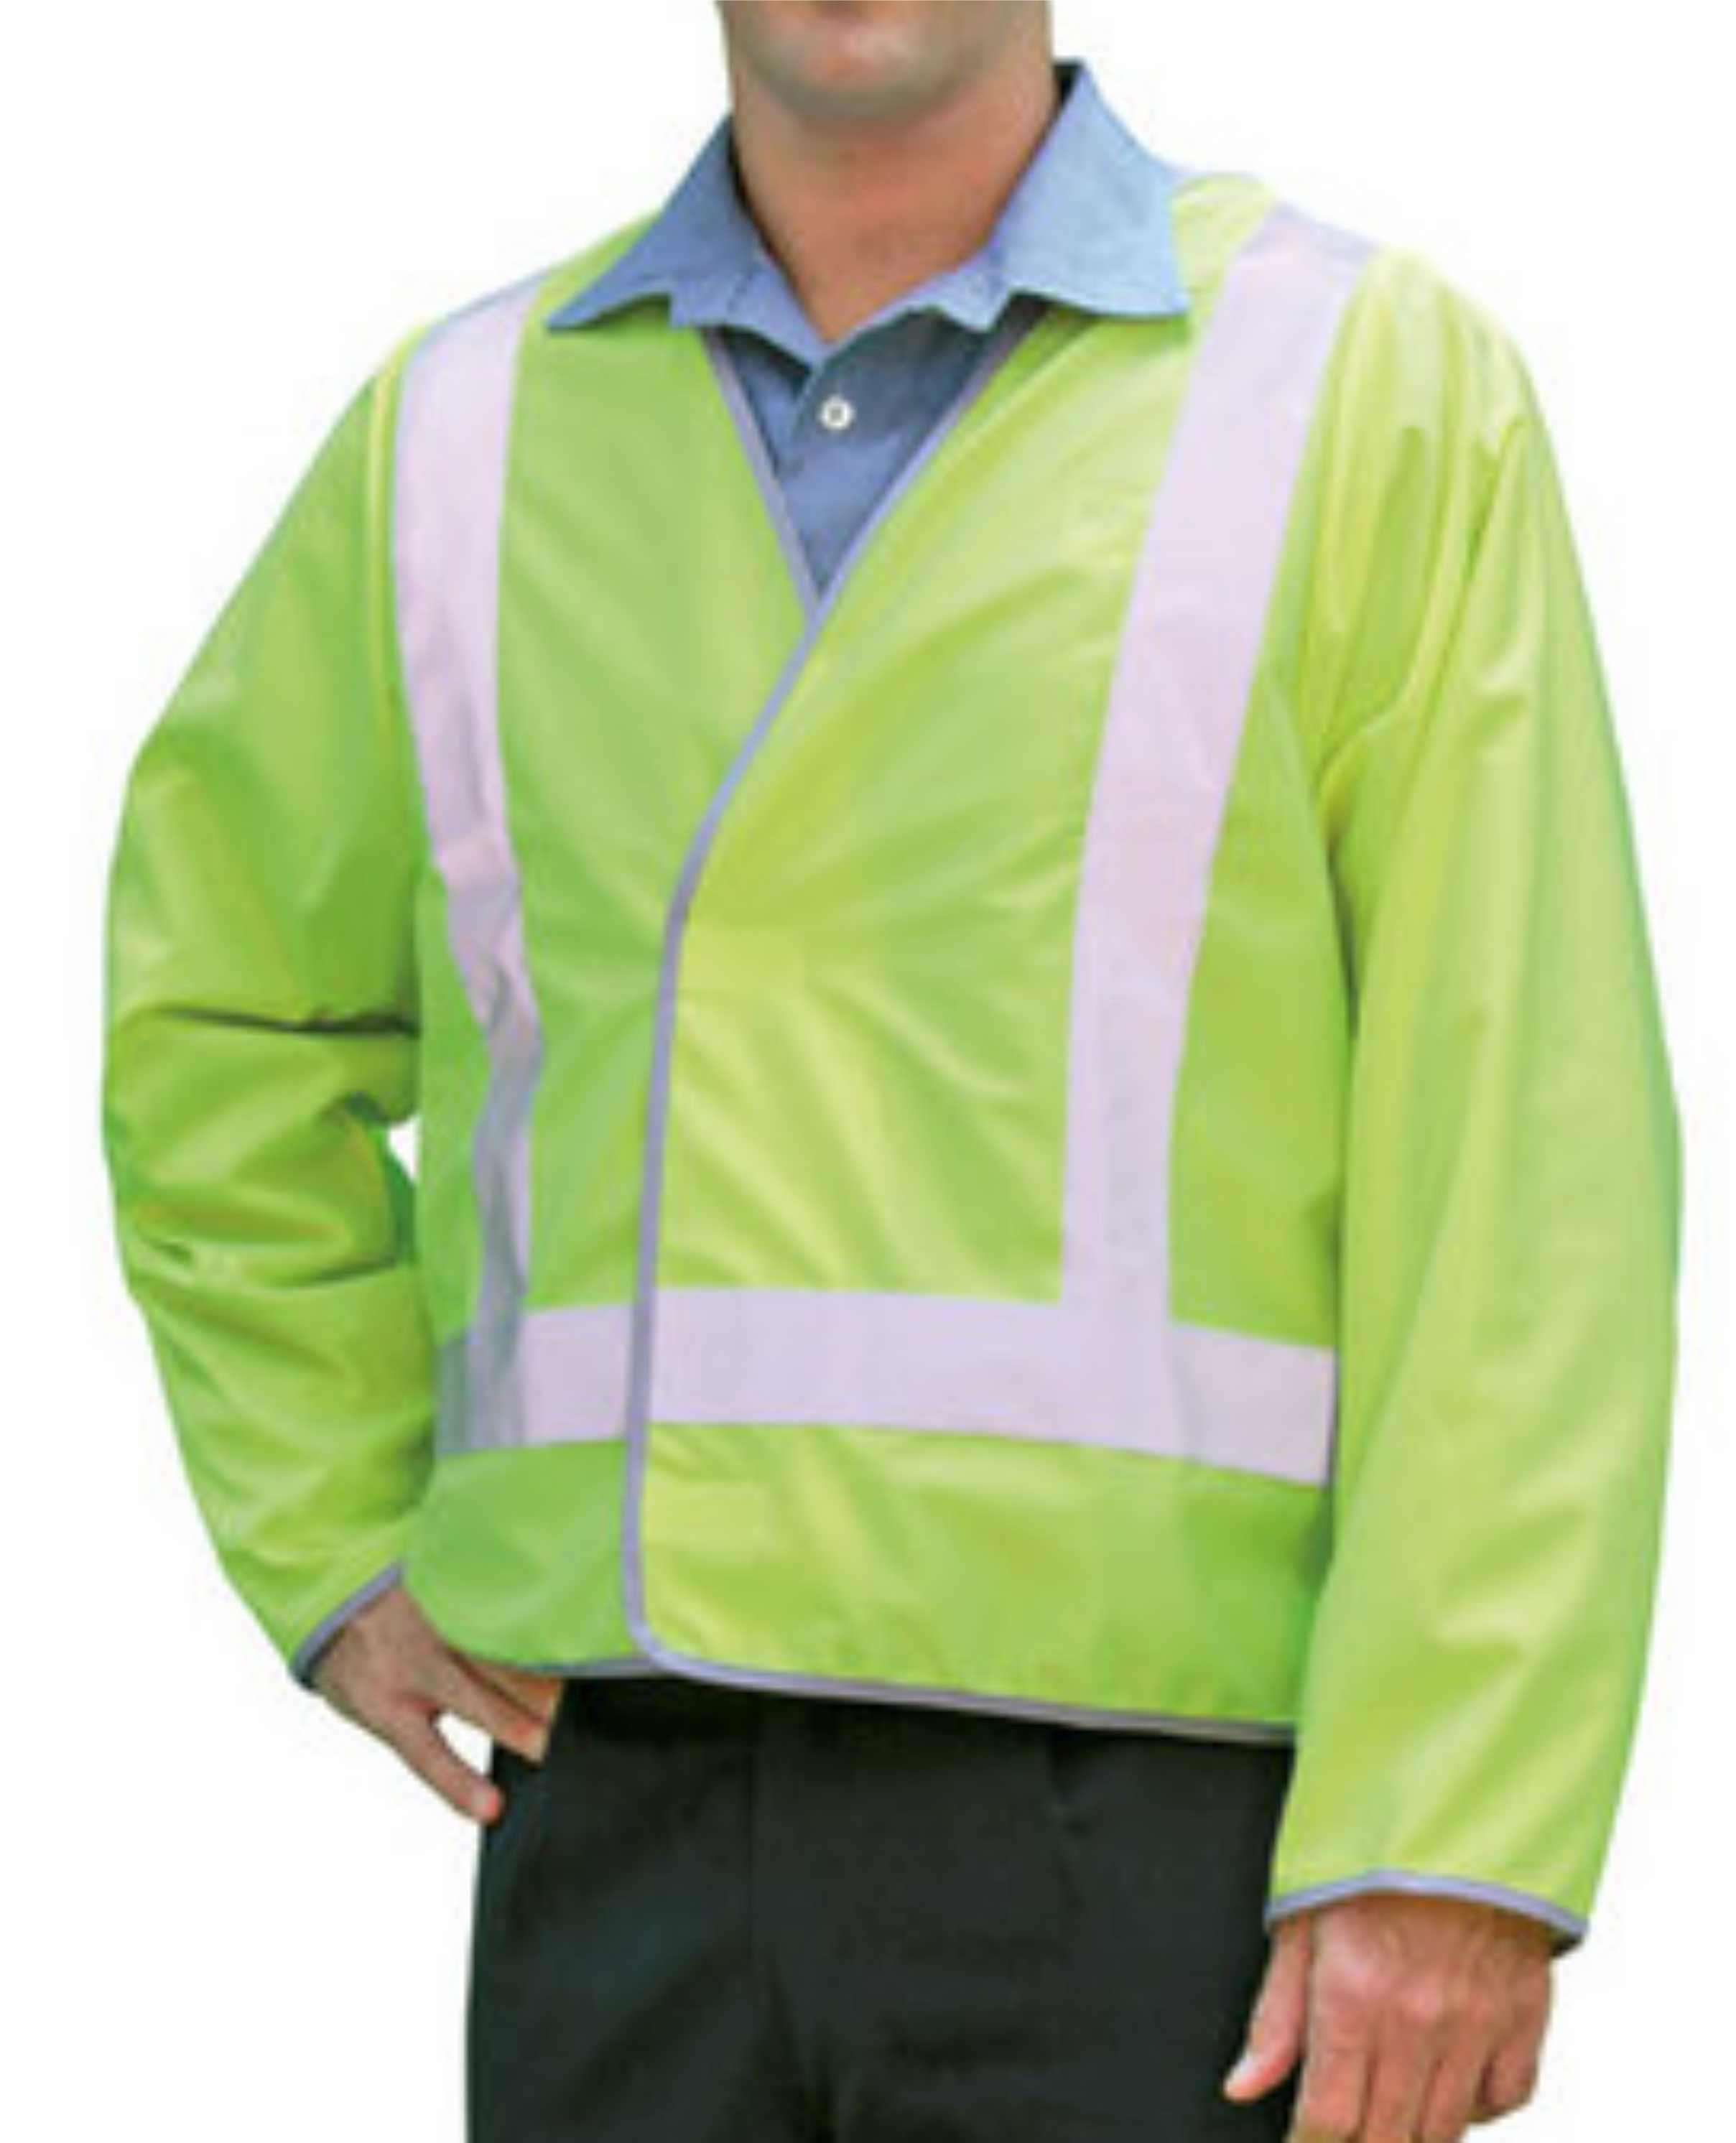 GuardianSafety-VN68035 Long Sleeve hivi safety vest